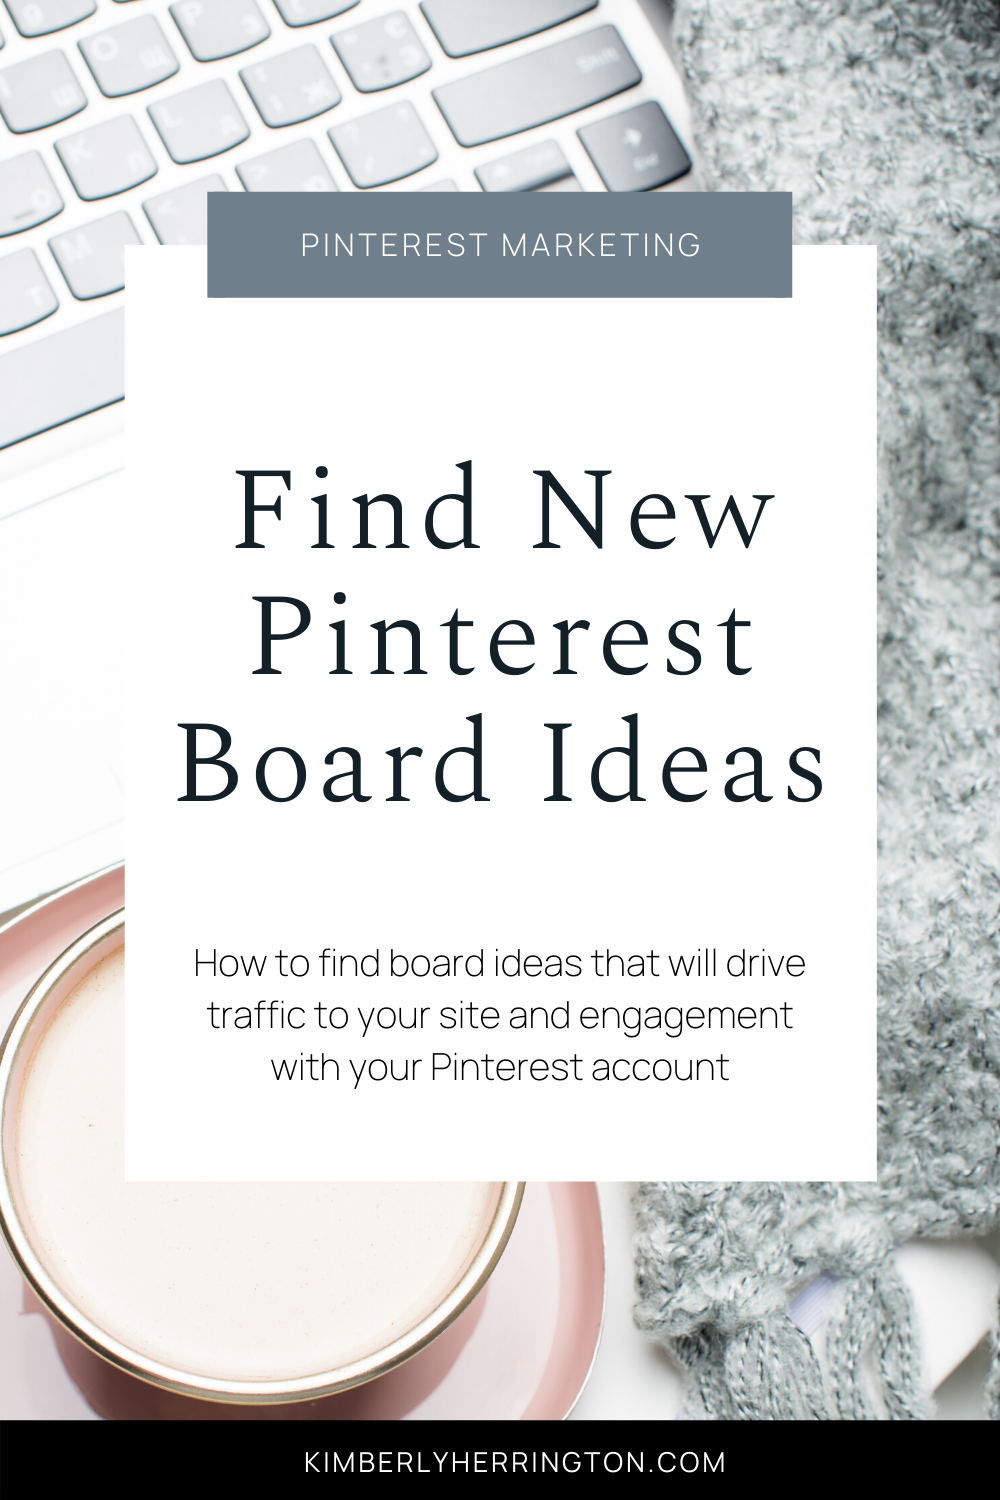 Find The Best Pinterest Board Ideas for Your Business